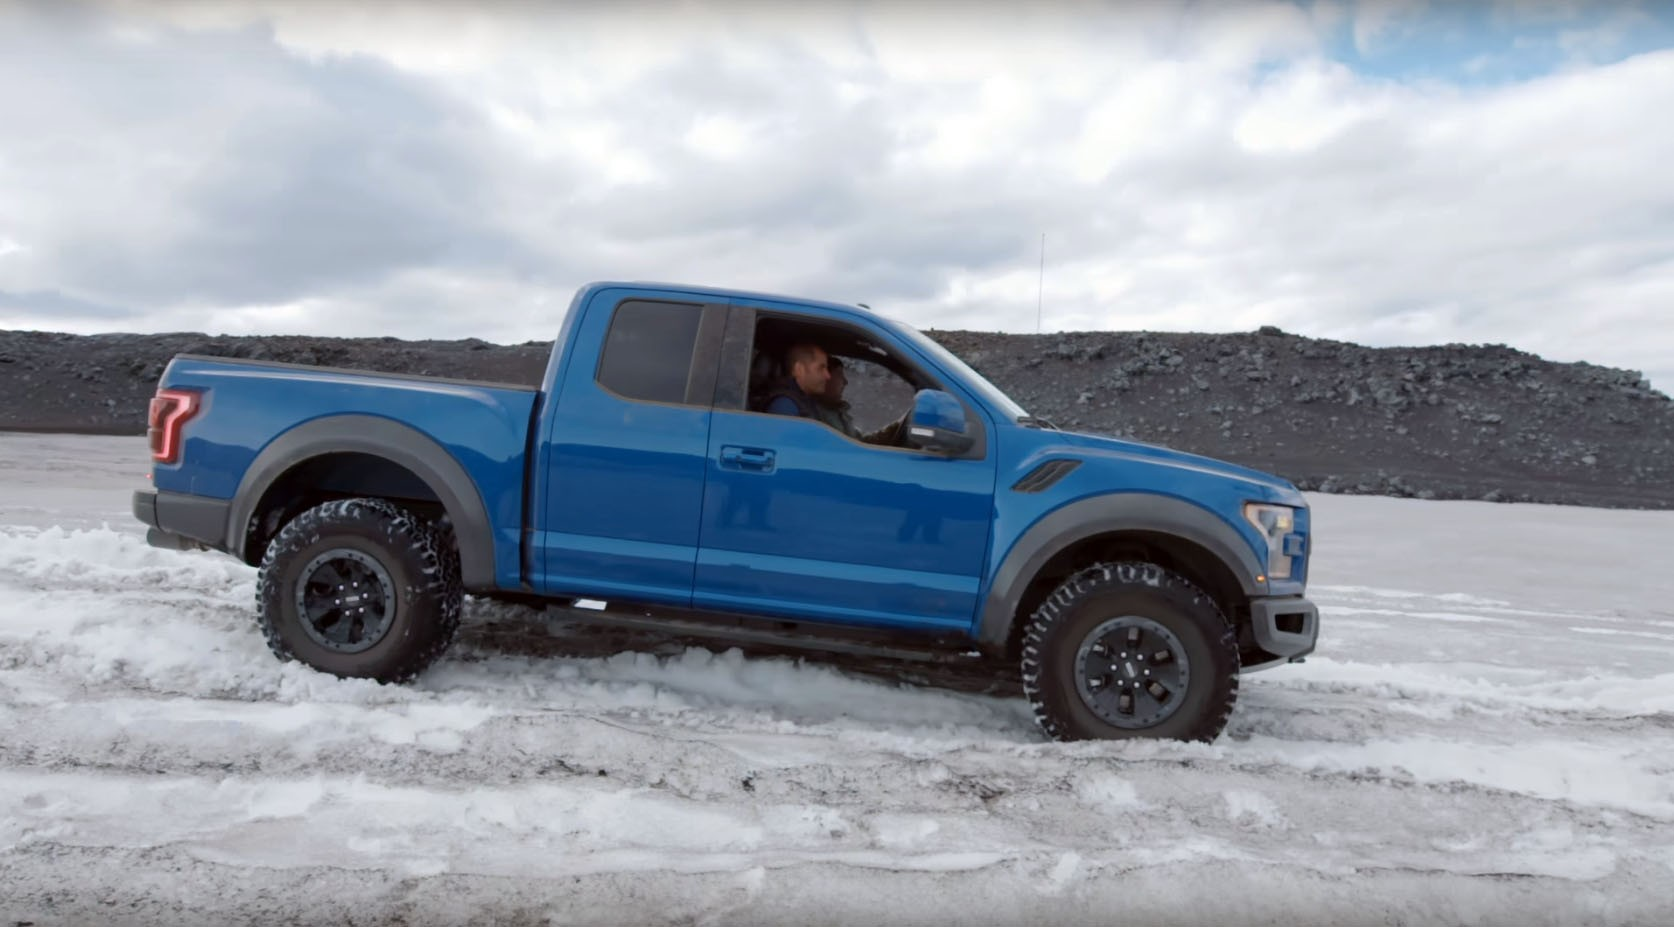 Ford F 150 Svt Raptor Gets Stuck In Snow And Is Towed By A Toyota